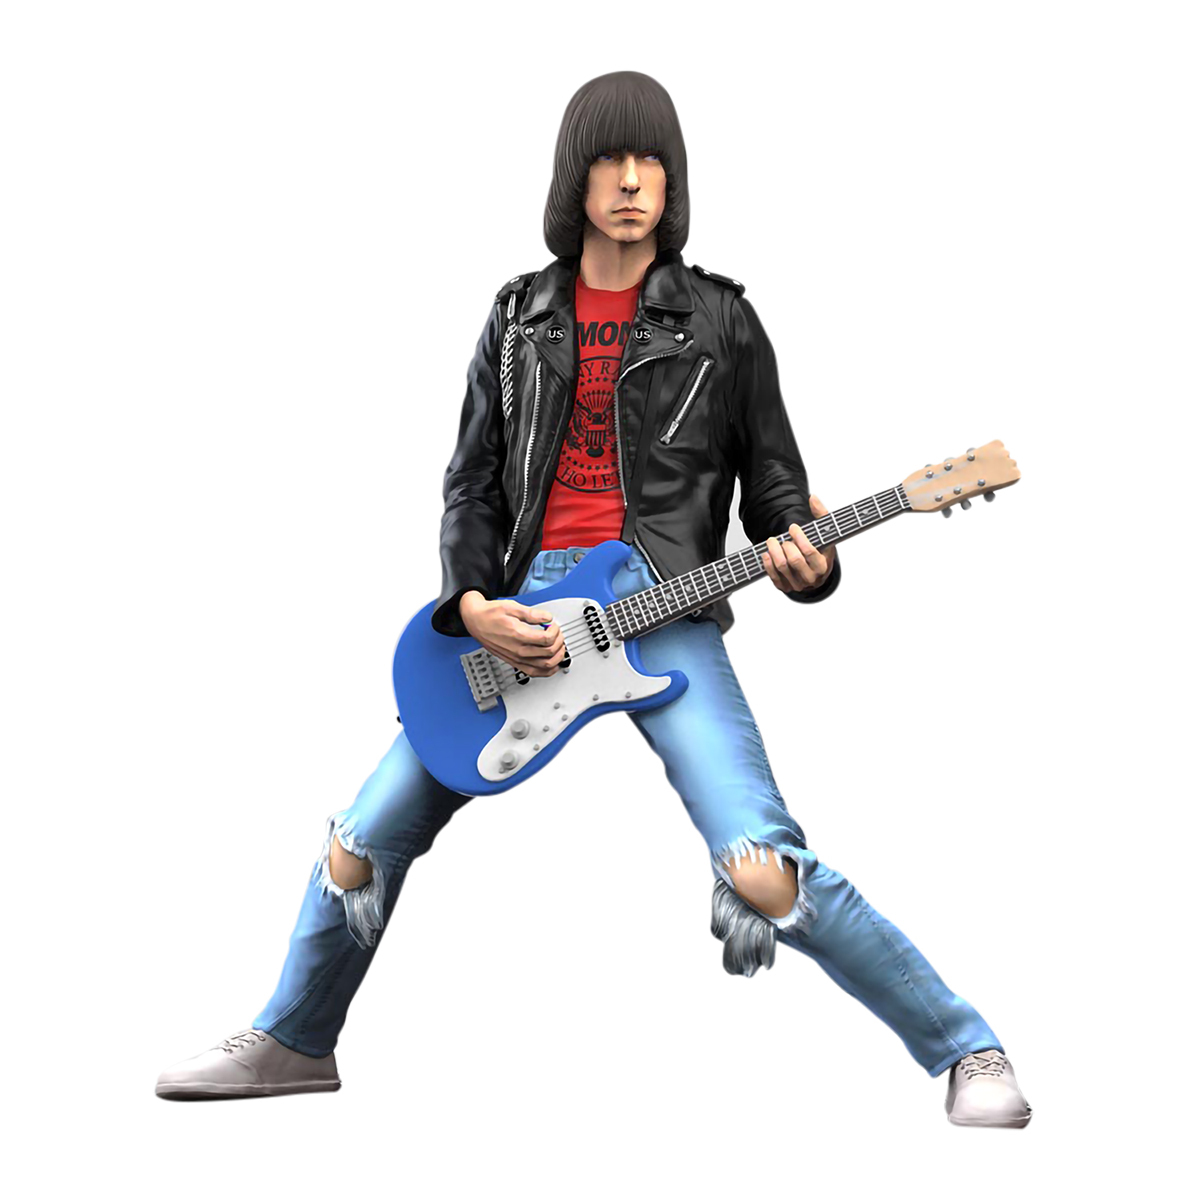 LIMITED EDITION JOHNNY RAMONE™ ROCK ICONZ STATUE - PREORDER